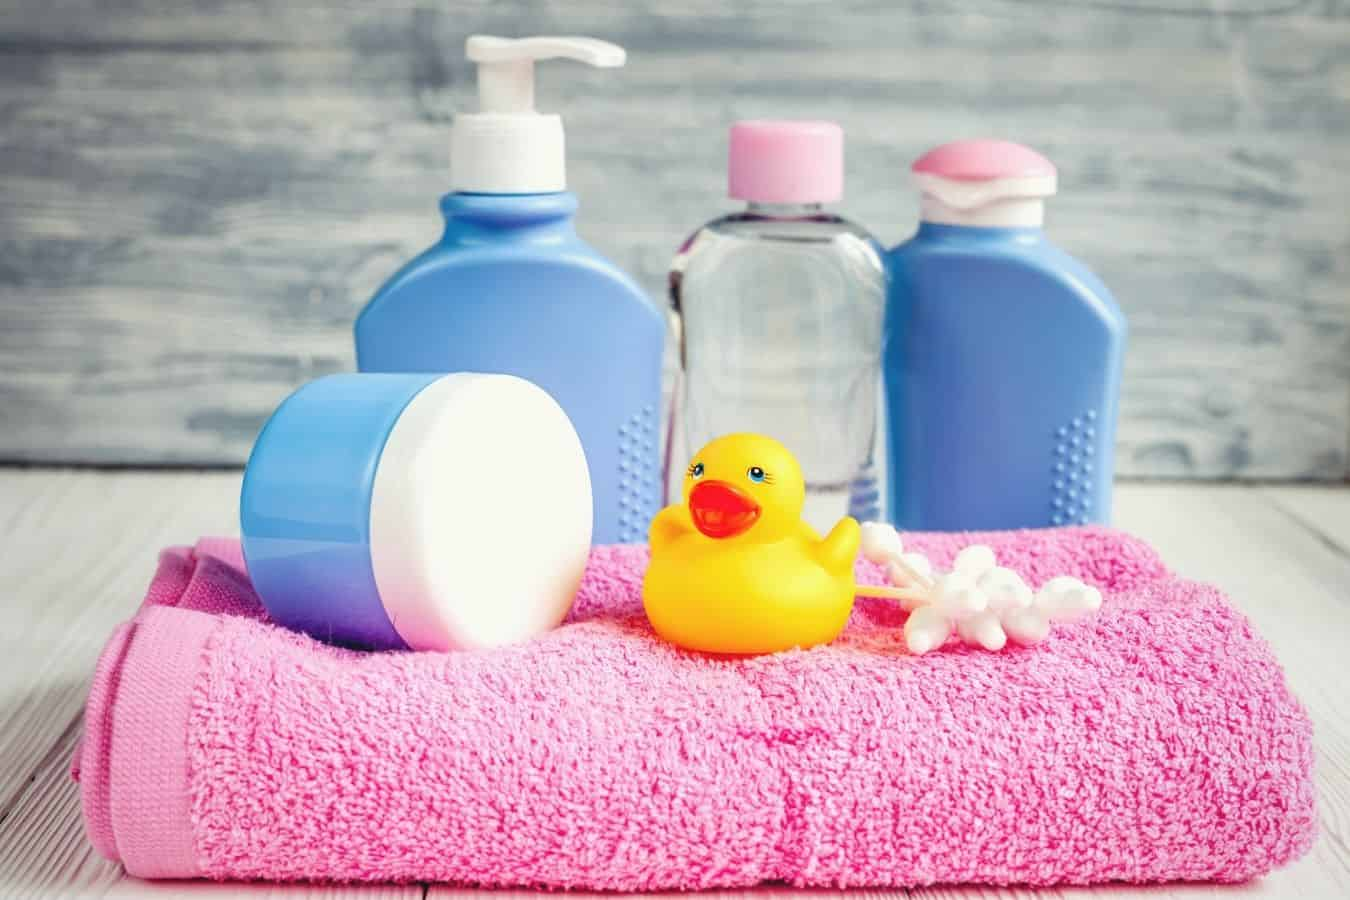 Is Baby Shampoo Good For Hair Loss